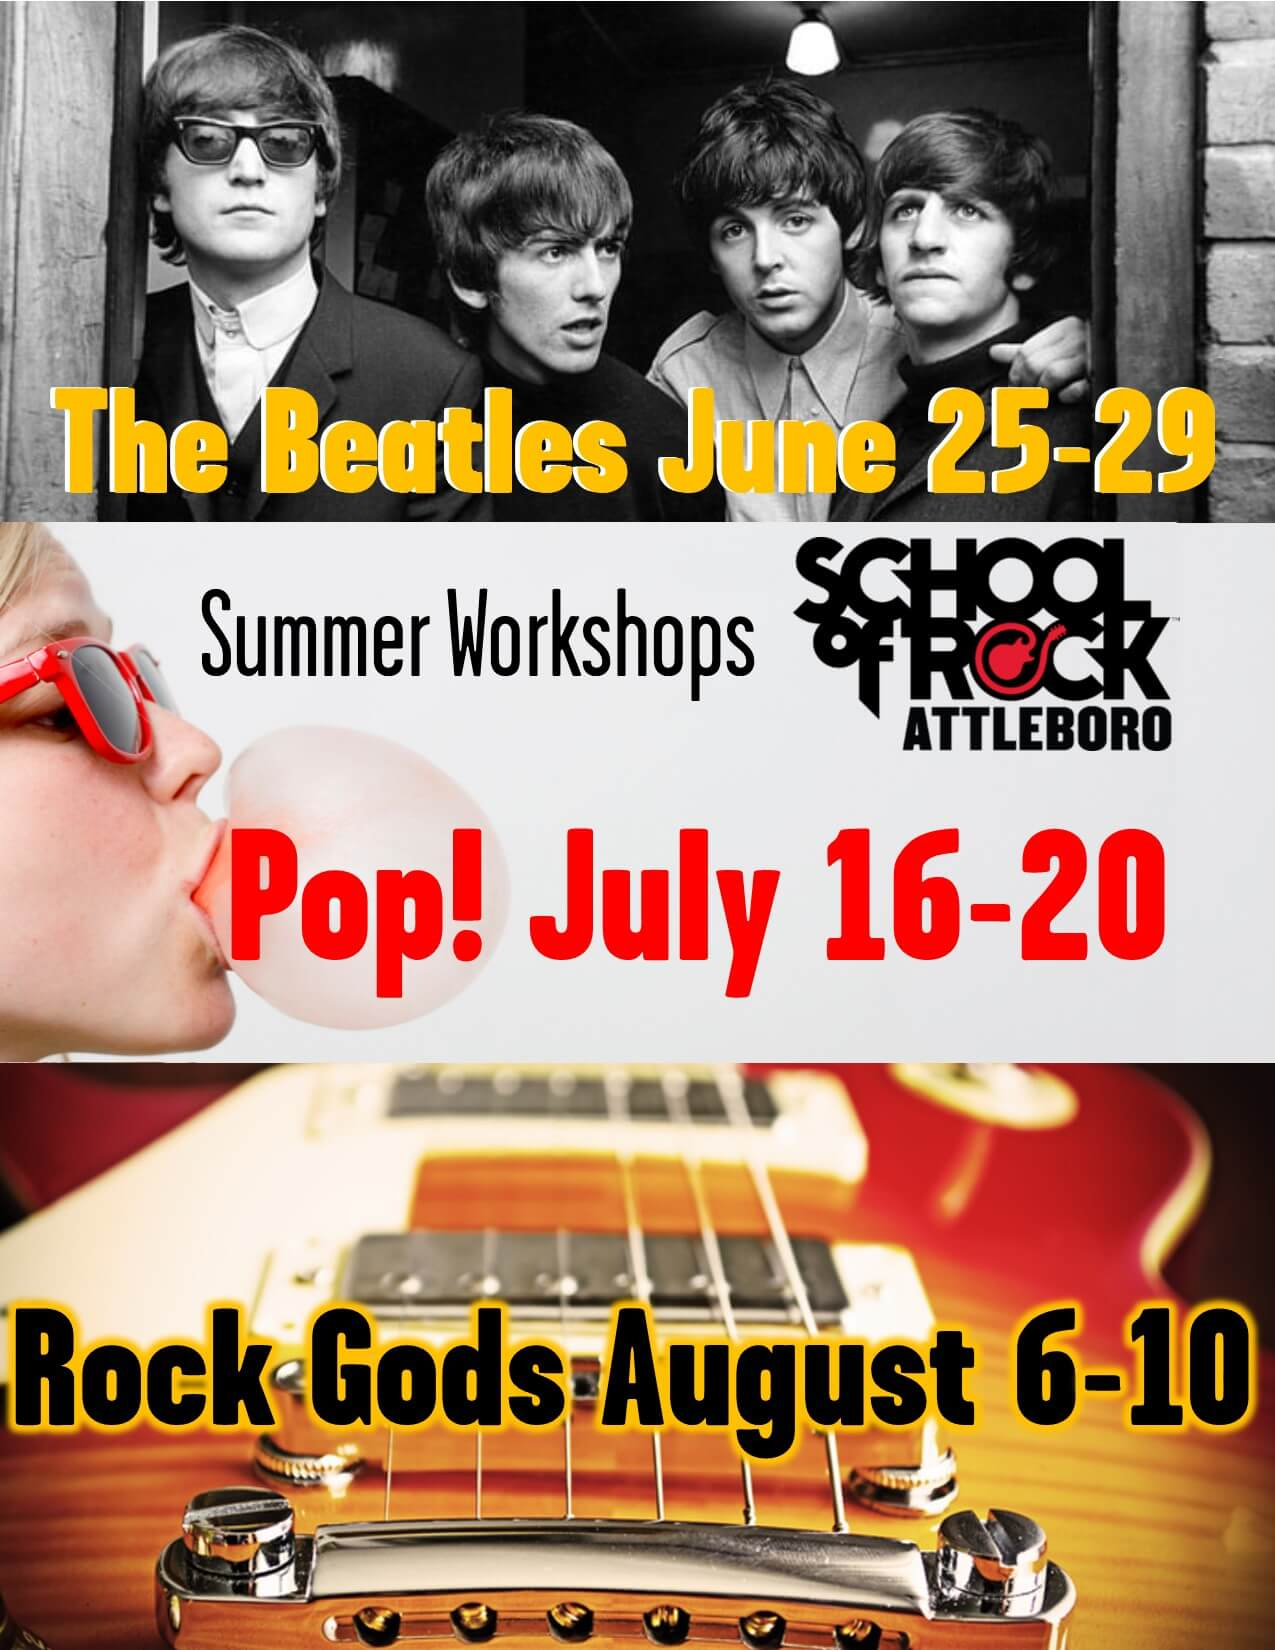 Summer Workshops, enrolling now!